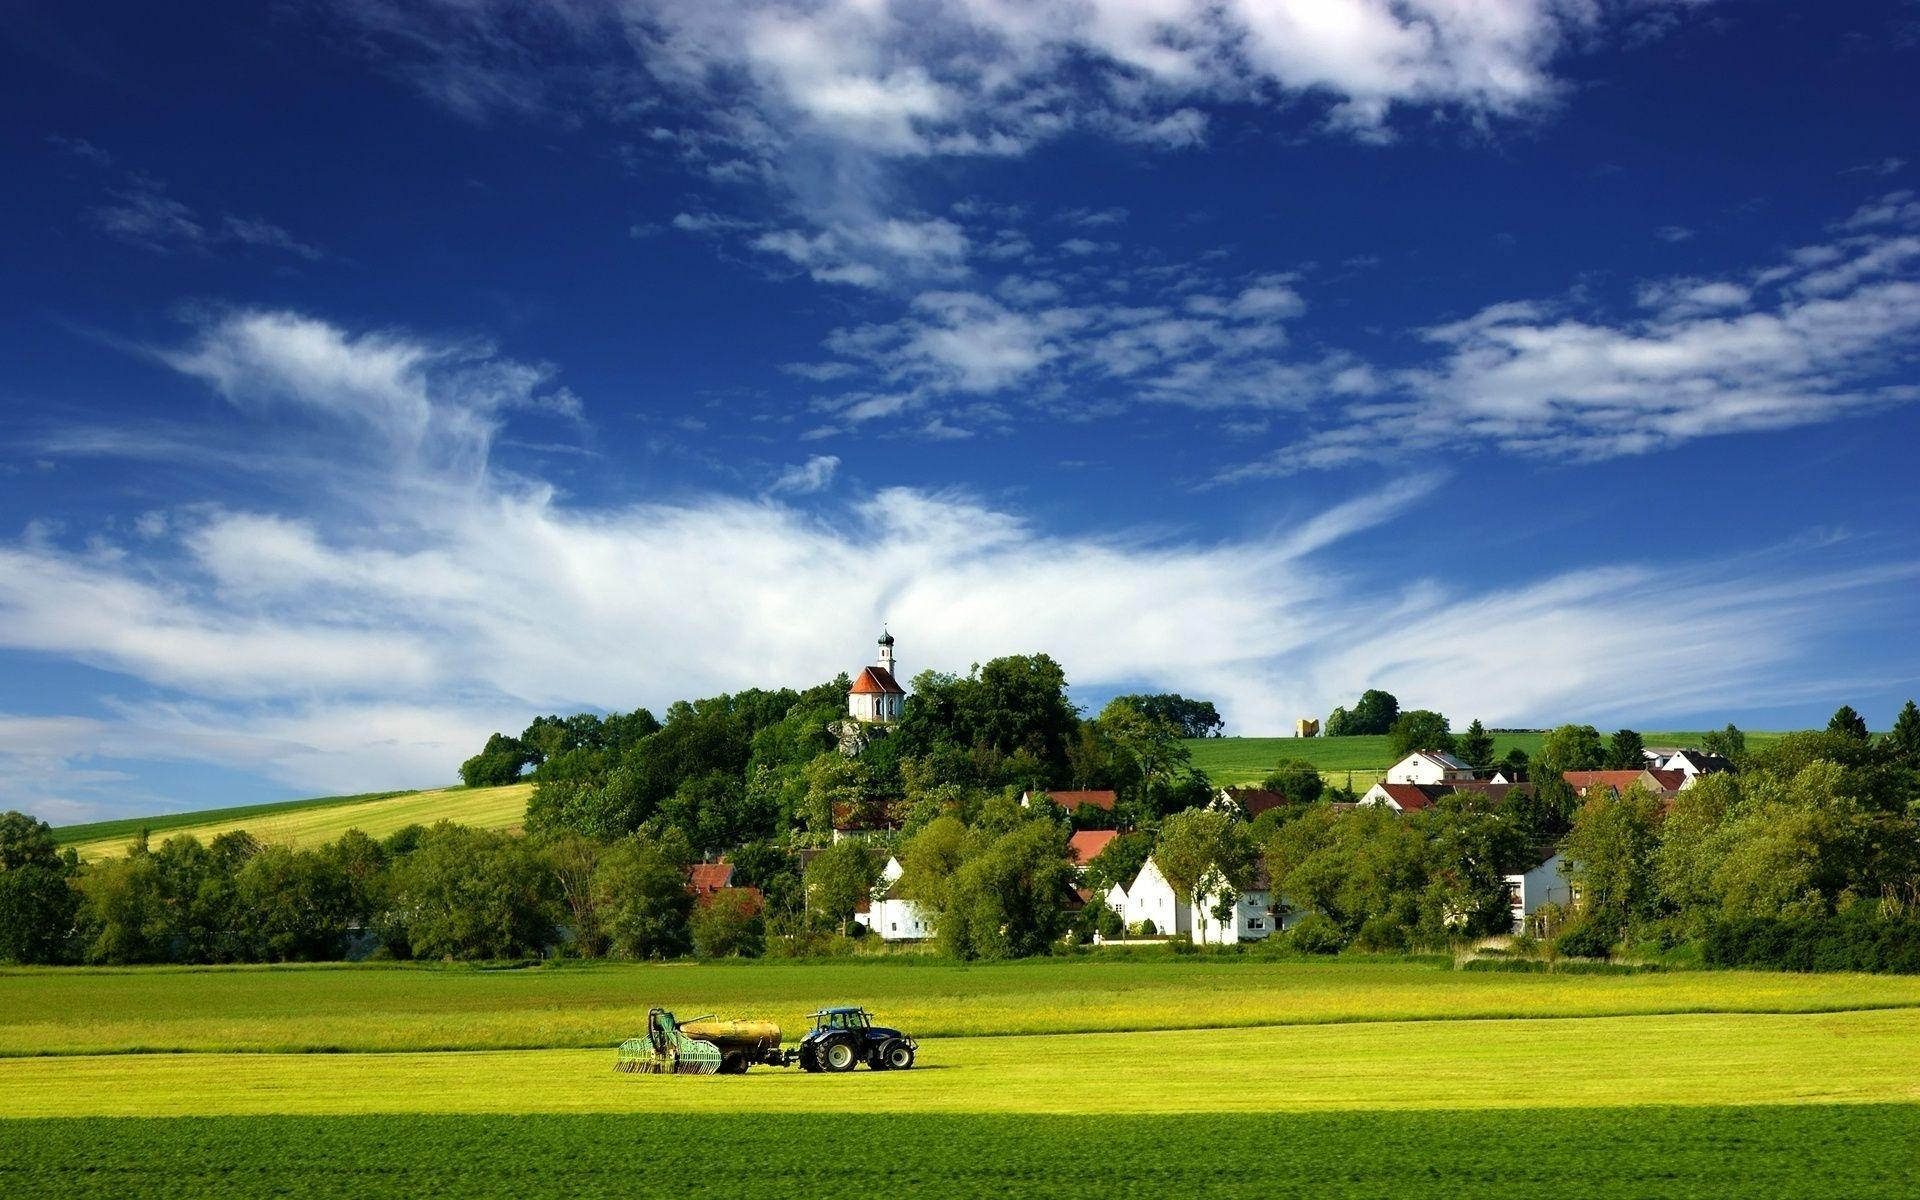 Image For > Tractor In Field Wallpapers